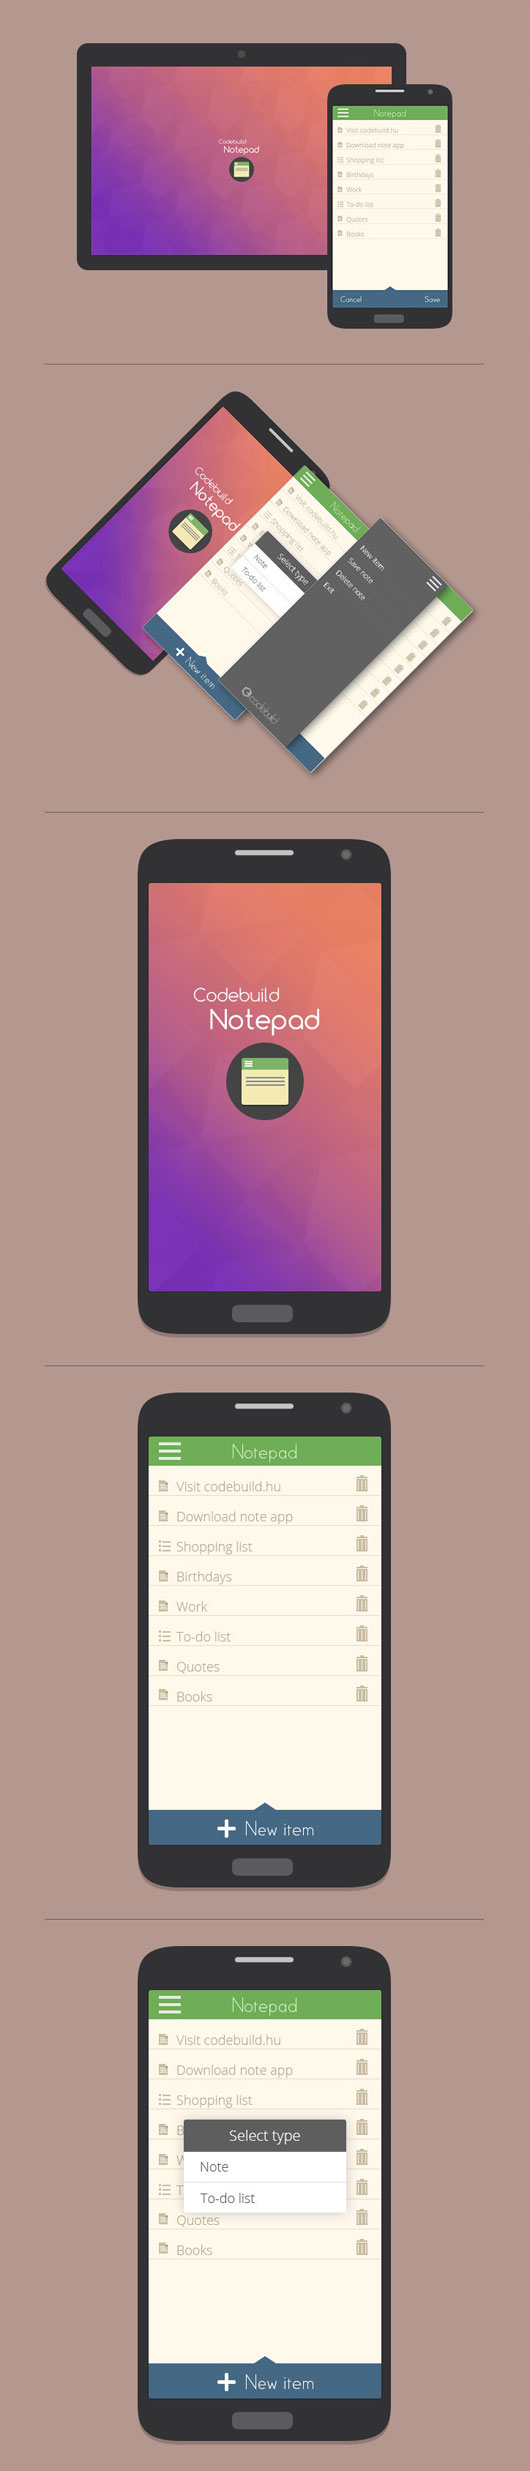 Android App UI Designs